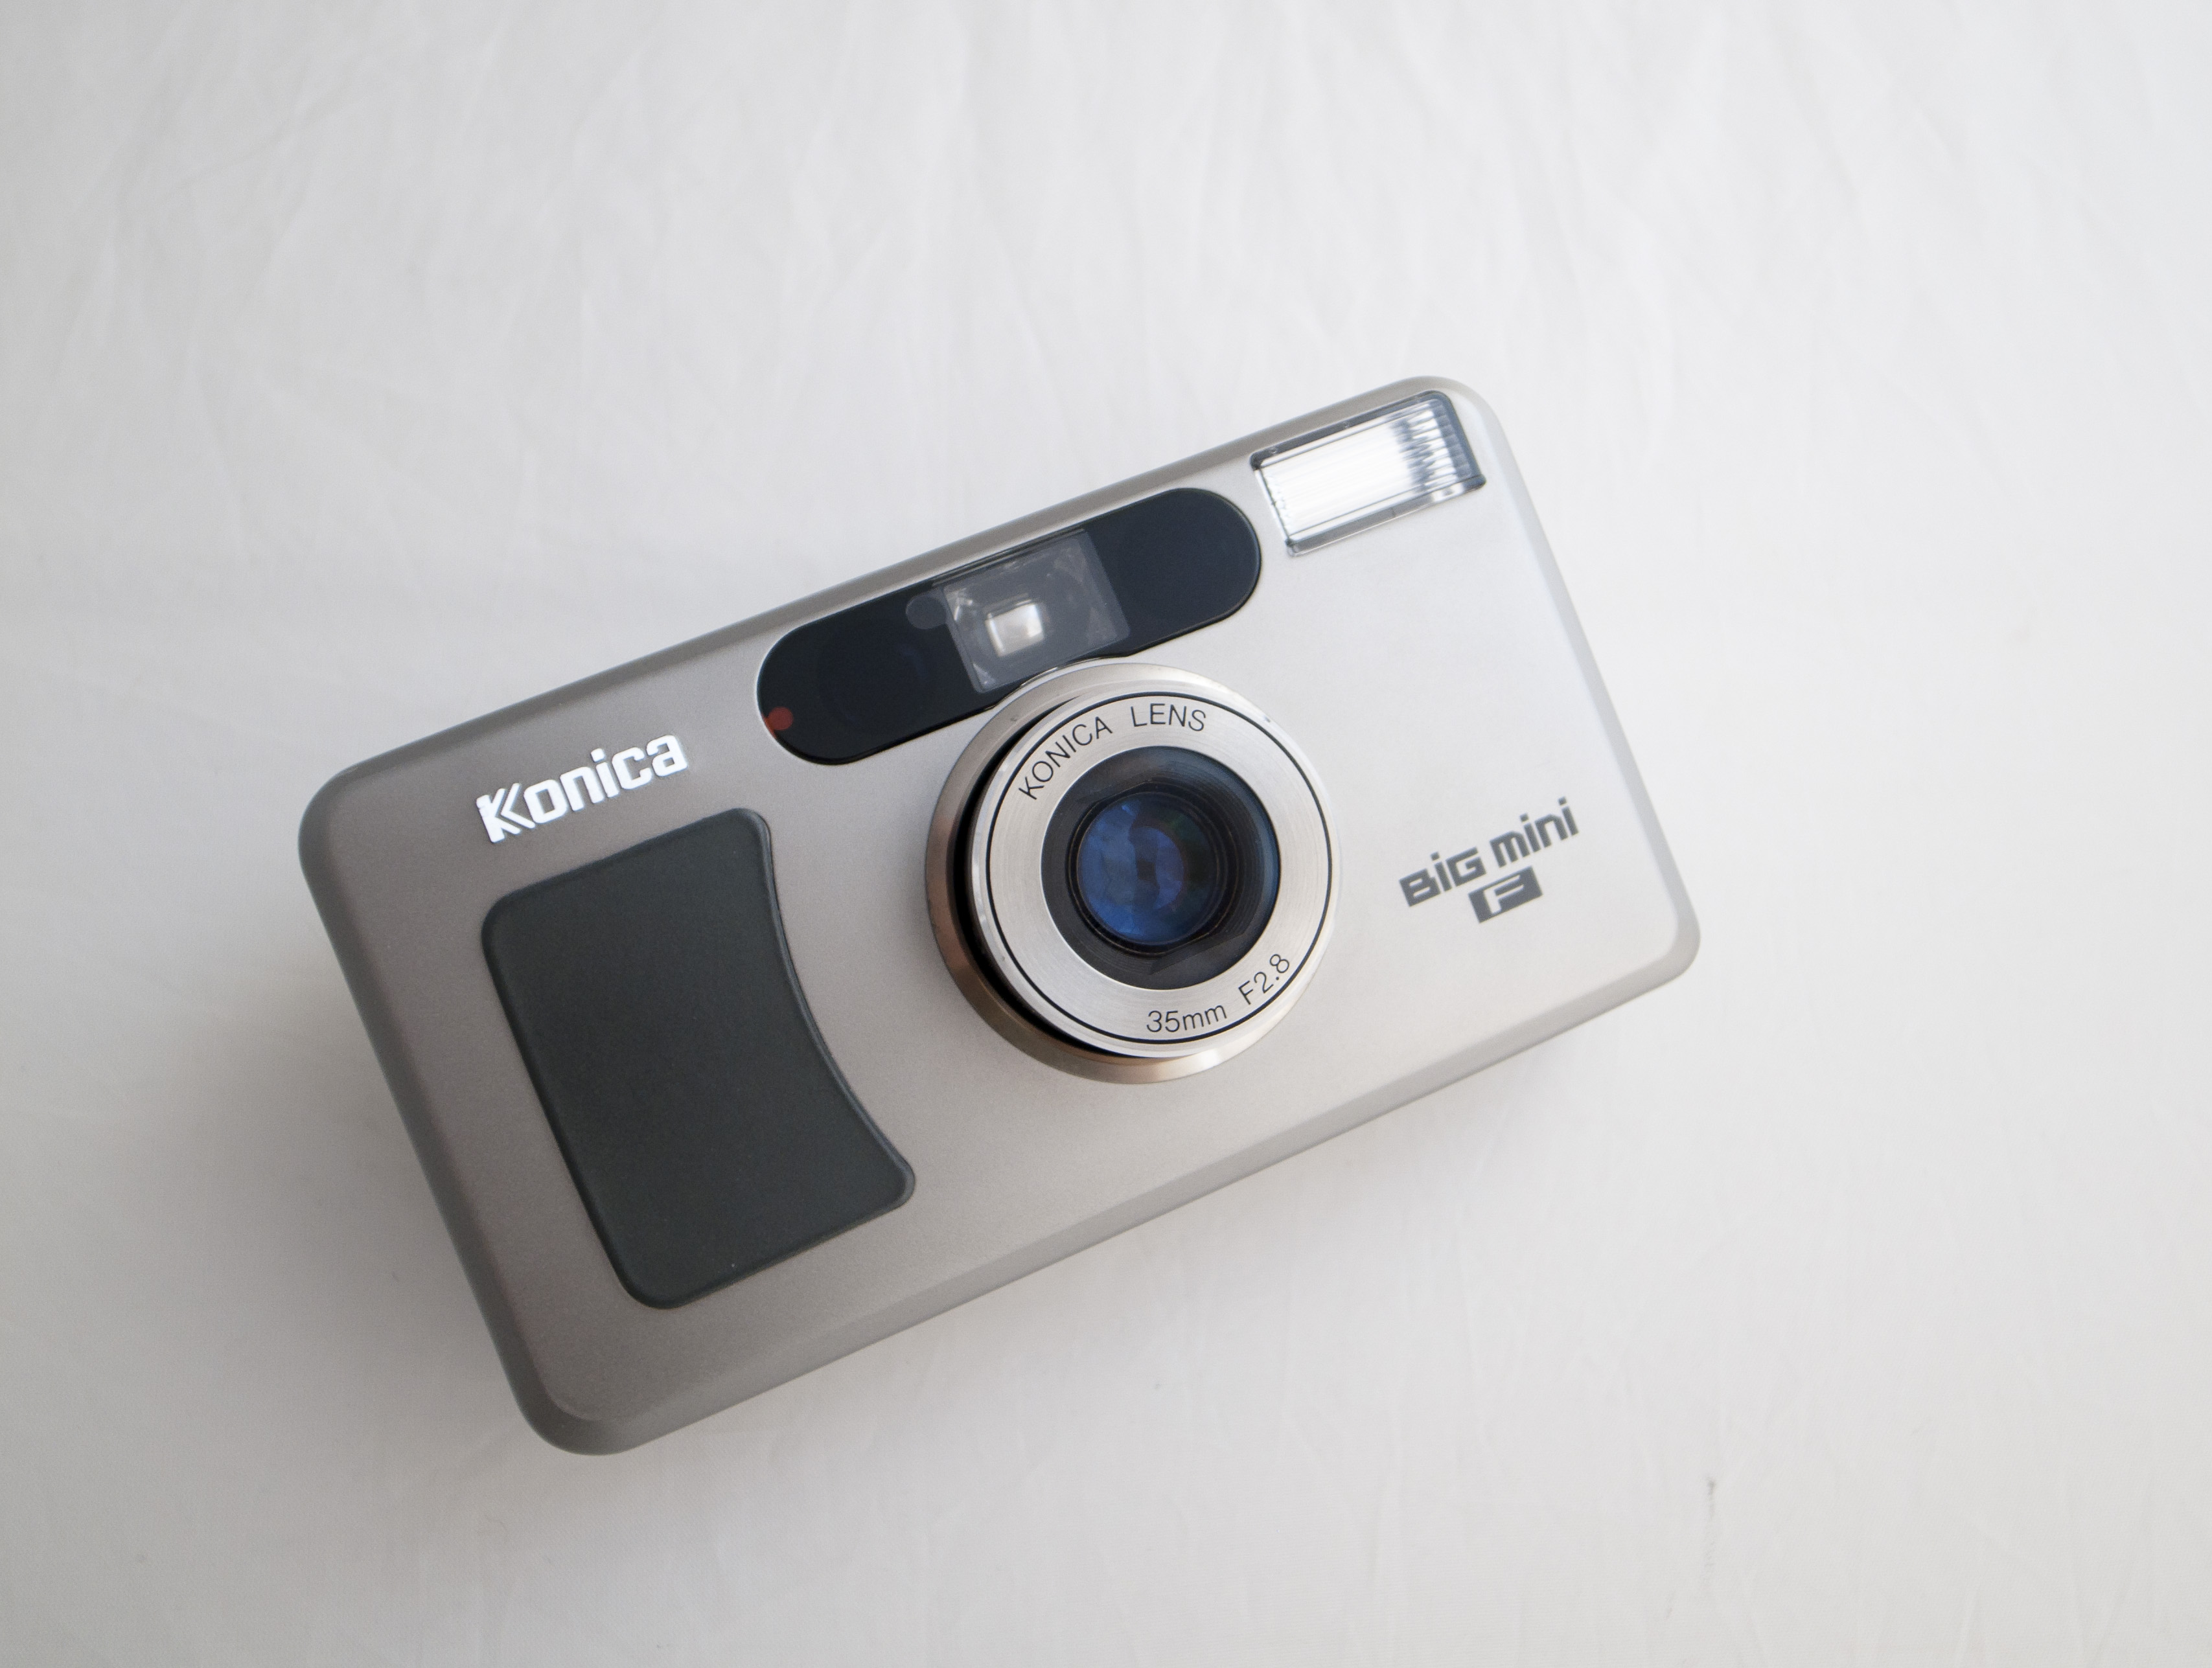 The Konica Big Mini - The ultimate bargain compact - Japan Camera Hunter